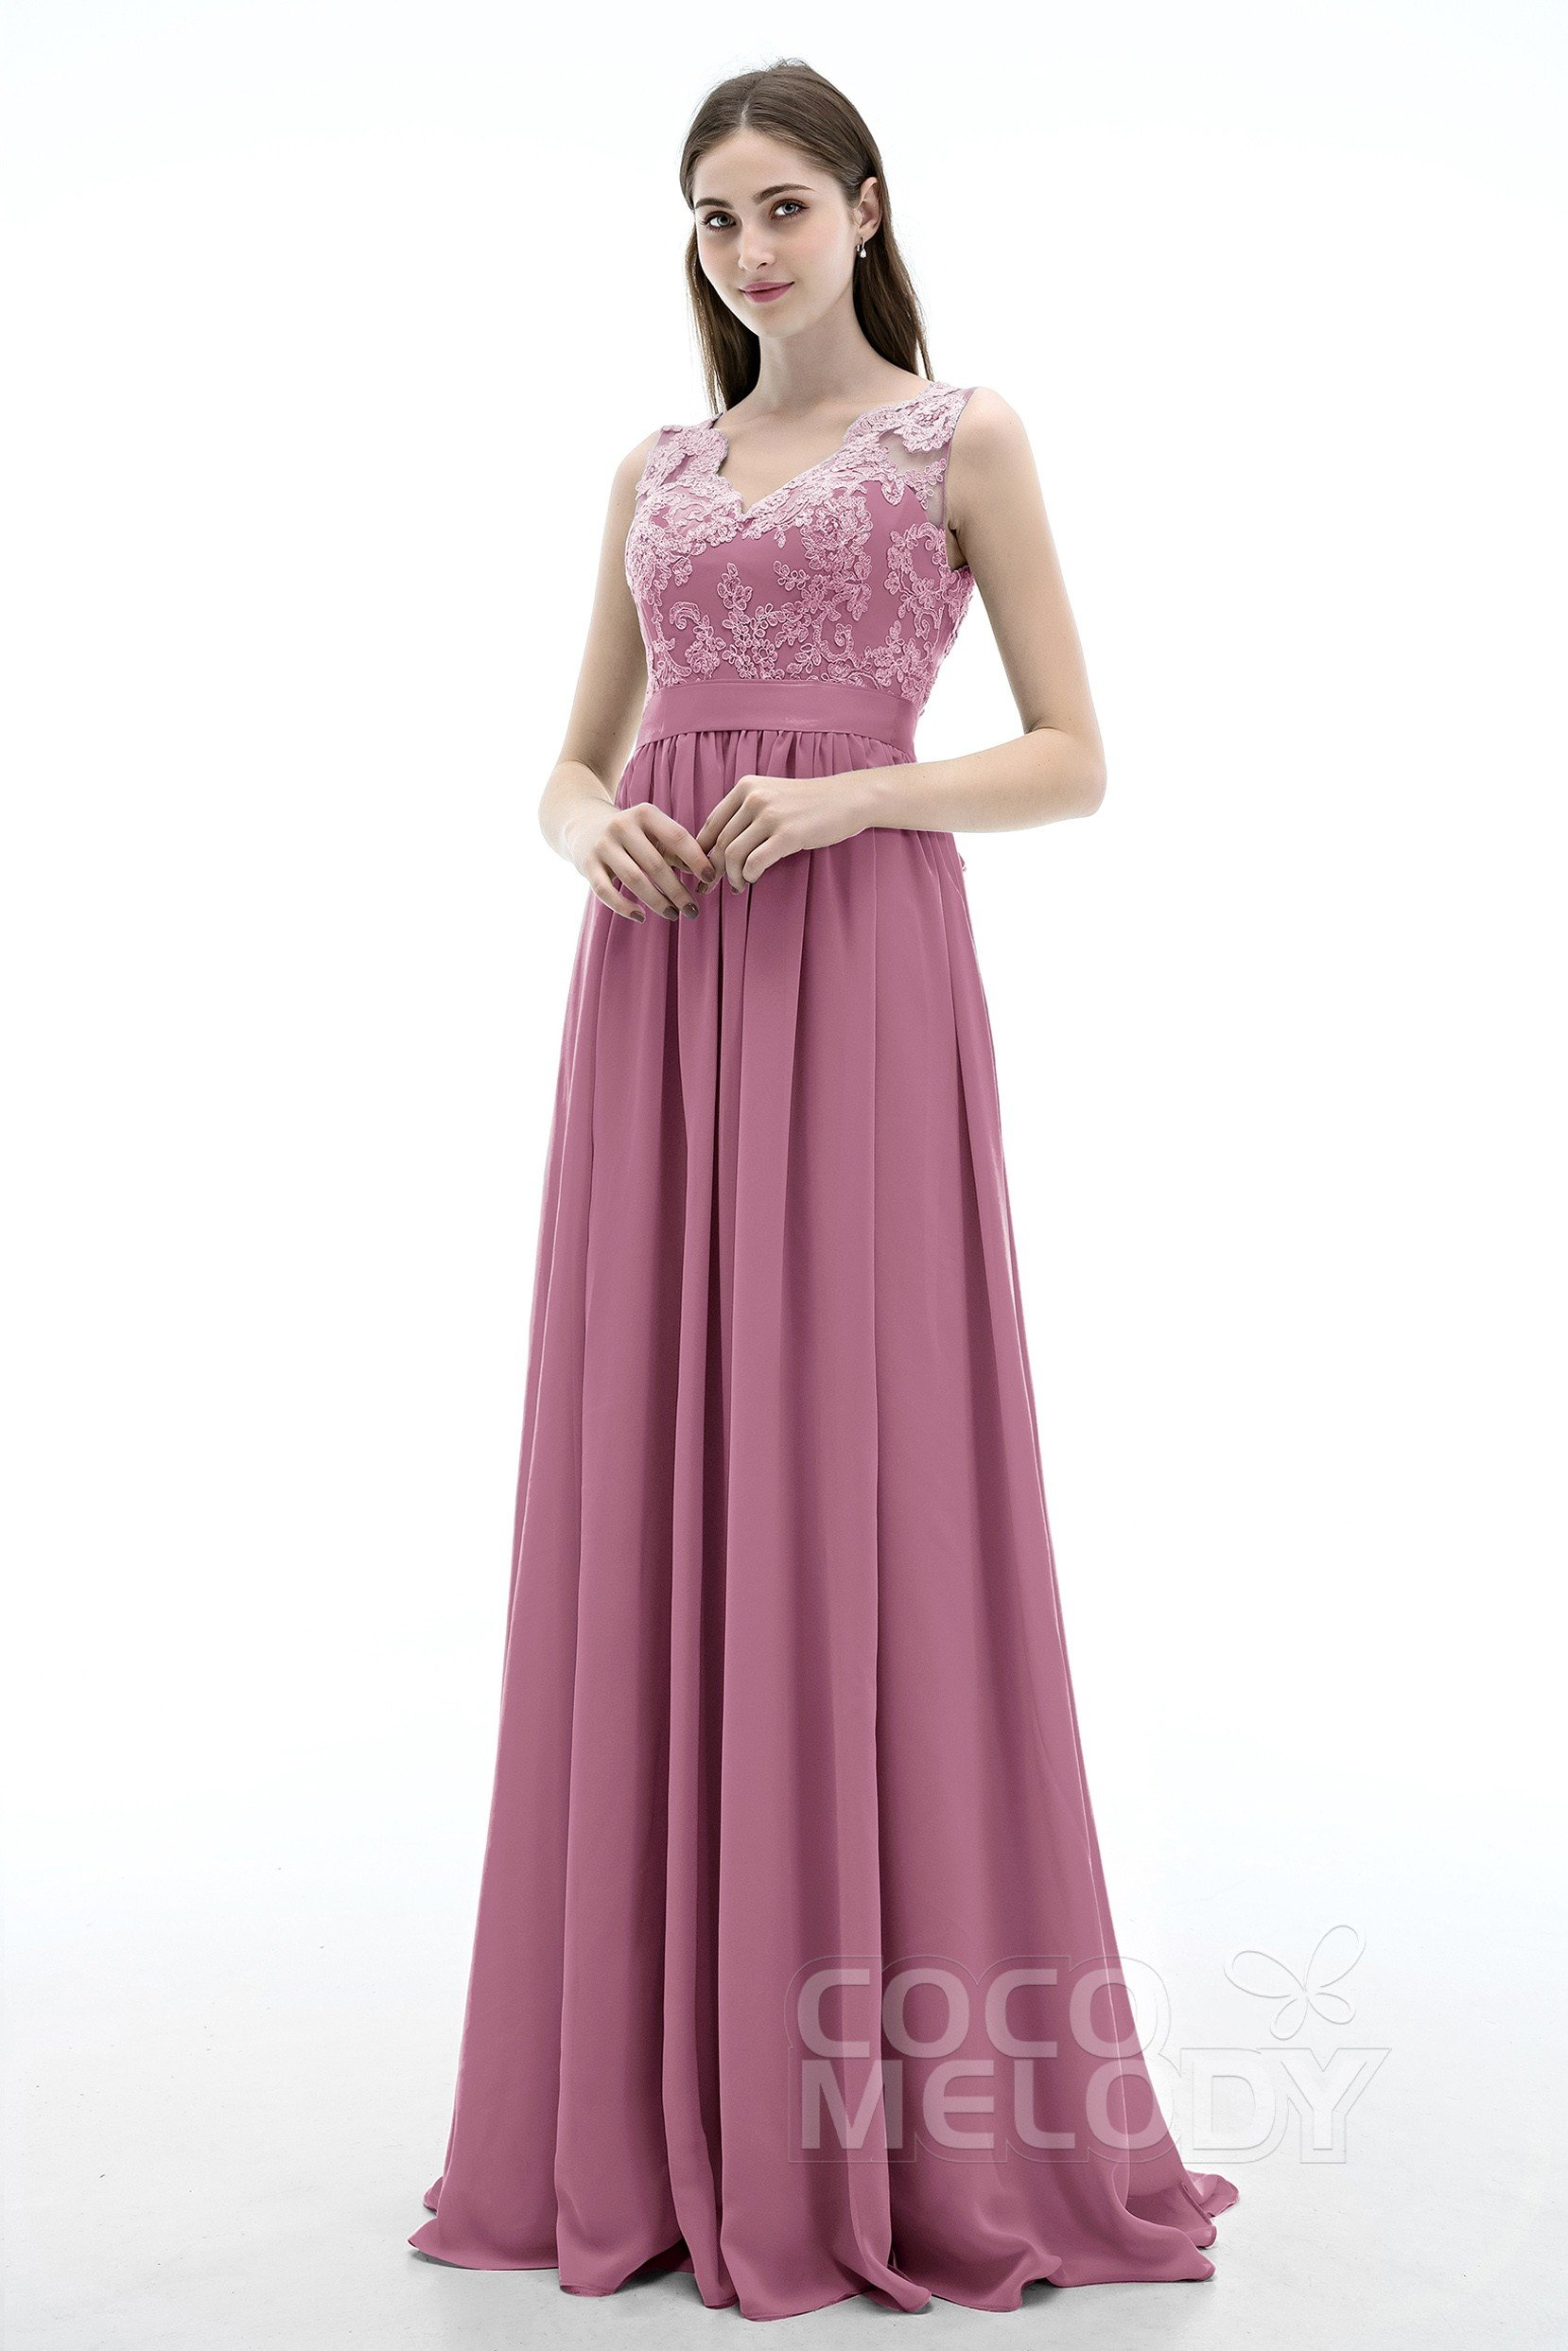 Chiffon long bridesmaid dresses cheap long bridesmaid dresses sheath column v neck natural sweep brush train chiffon sleeveless open back bridesmaid ombrellifo Gallery